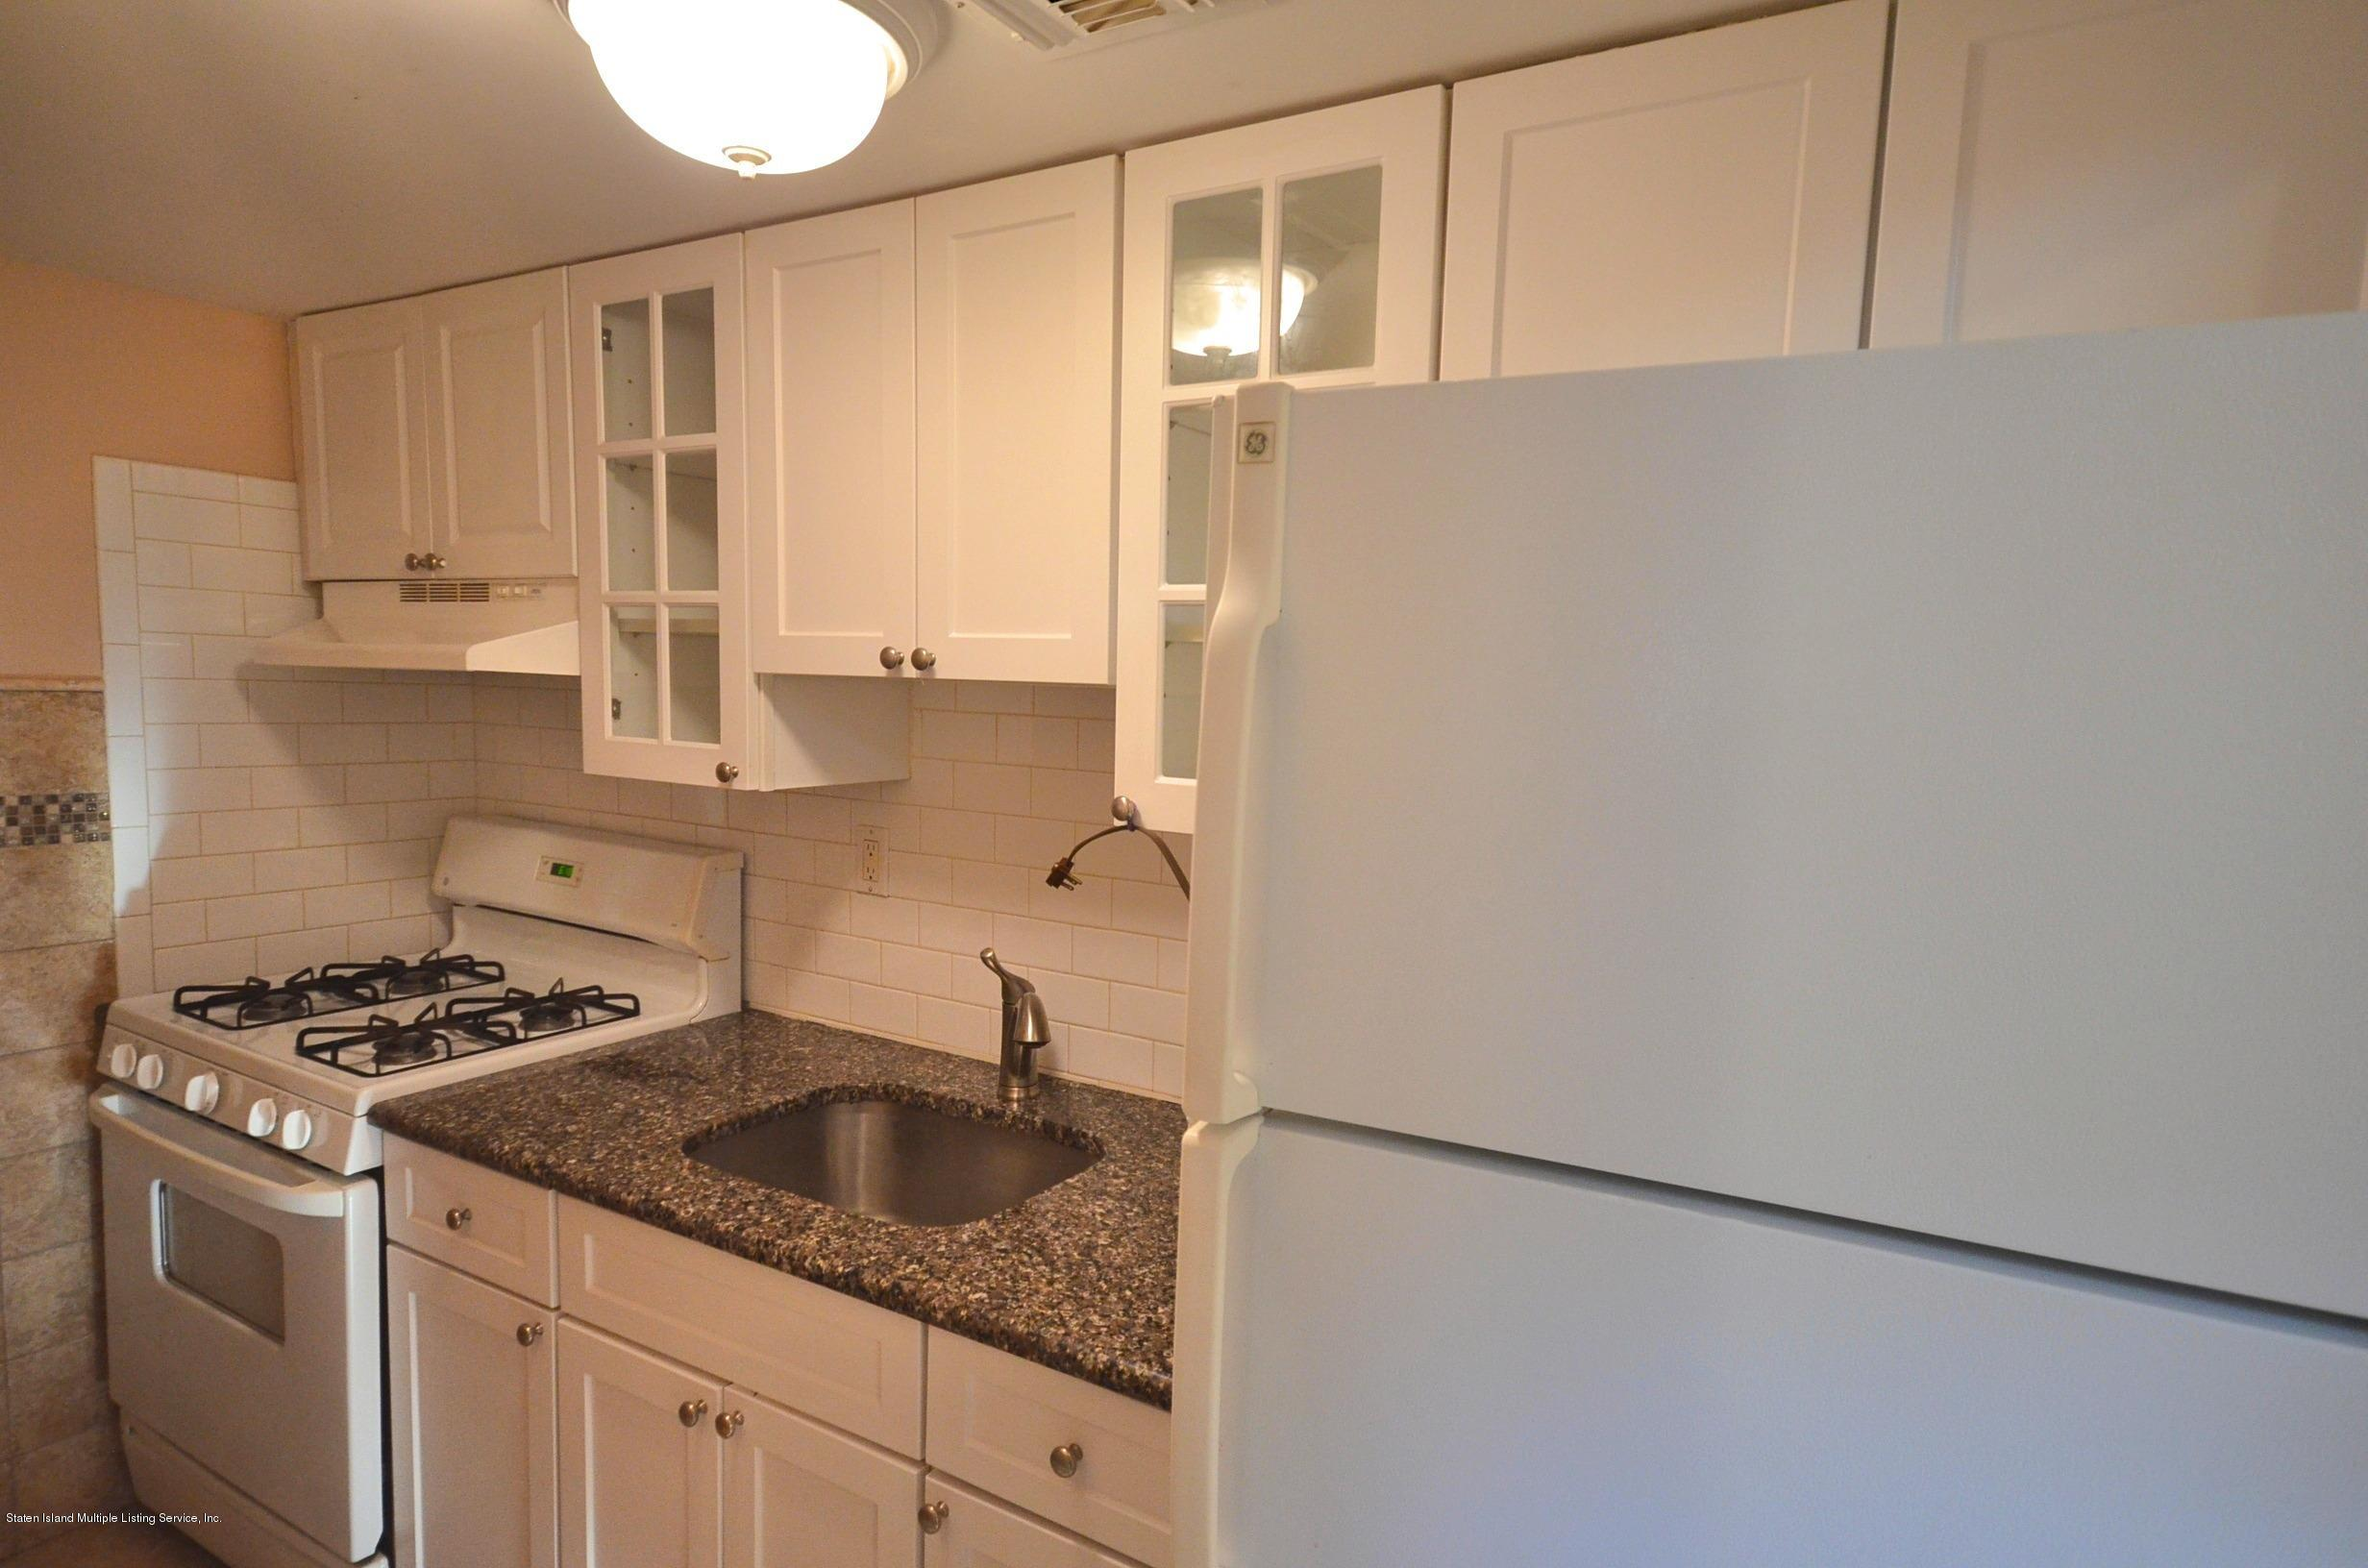 Two Family - Semi-Attached 984 Manor Road  Staten Island, NY 10314, MLS-1139616-29